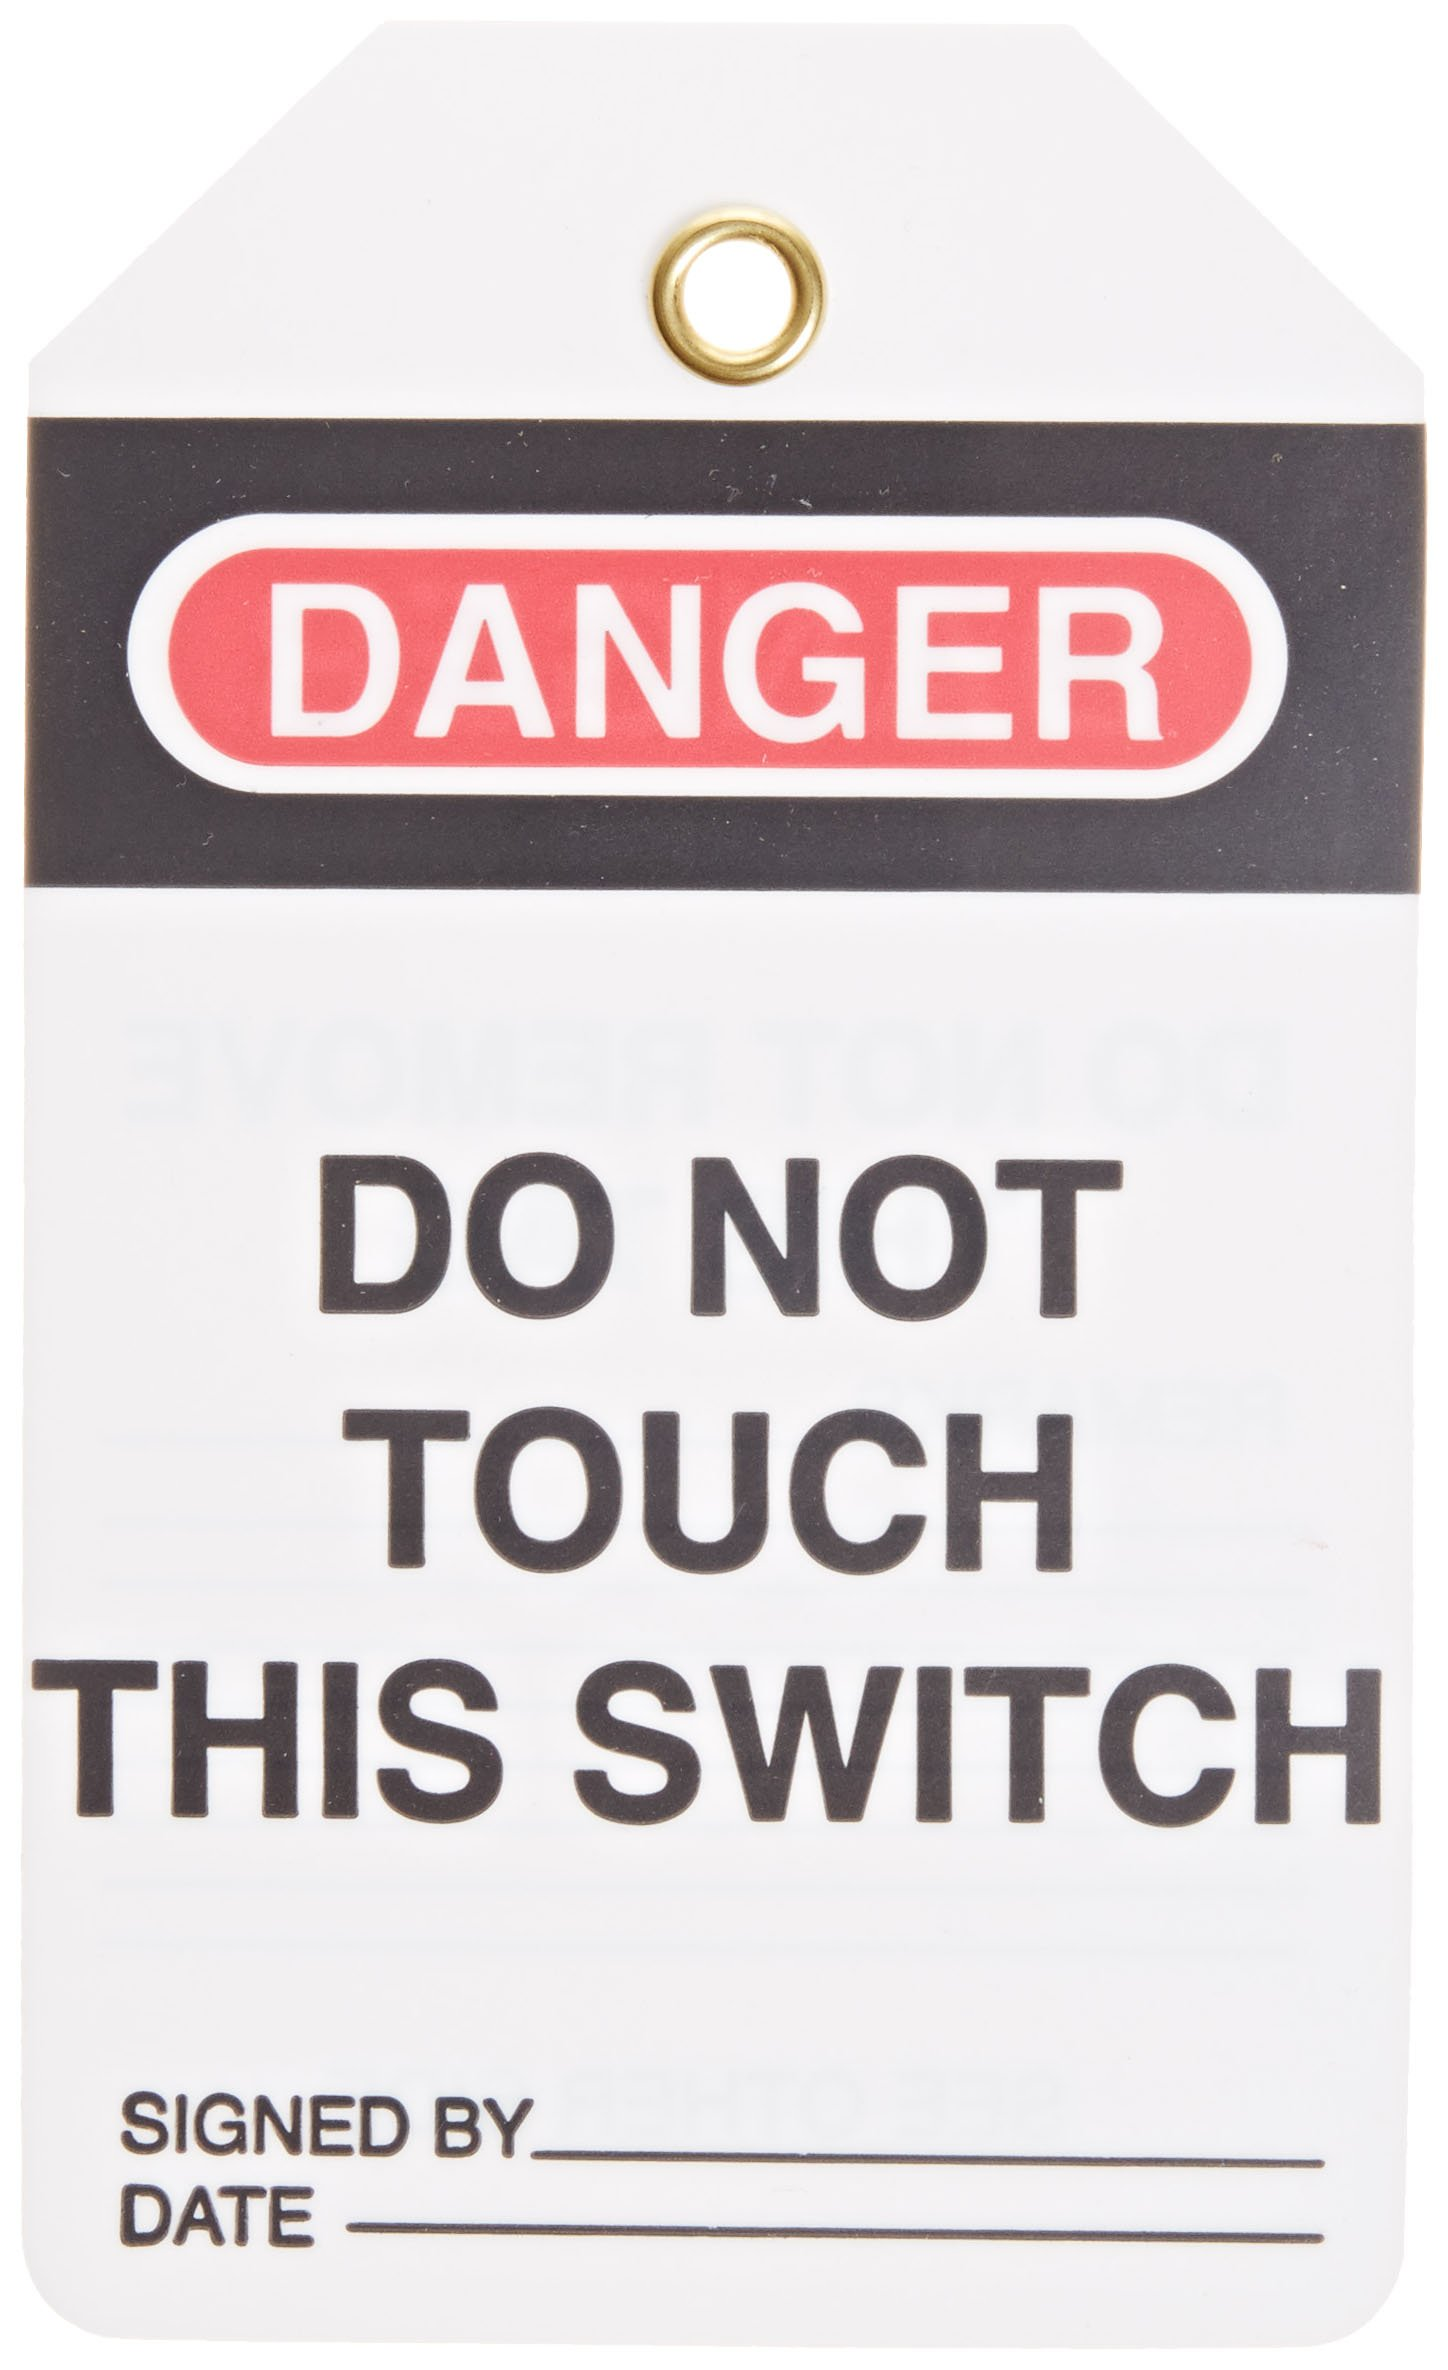 Lockout Tag, Super Laminated, Reusable Lockout Tag, Legend ''Do Not Touch This Switch'', 5-1/2'' Length x 3-1/4'' Width